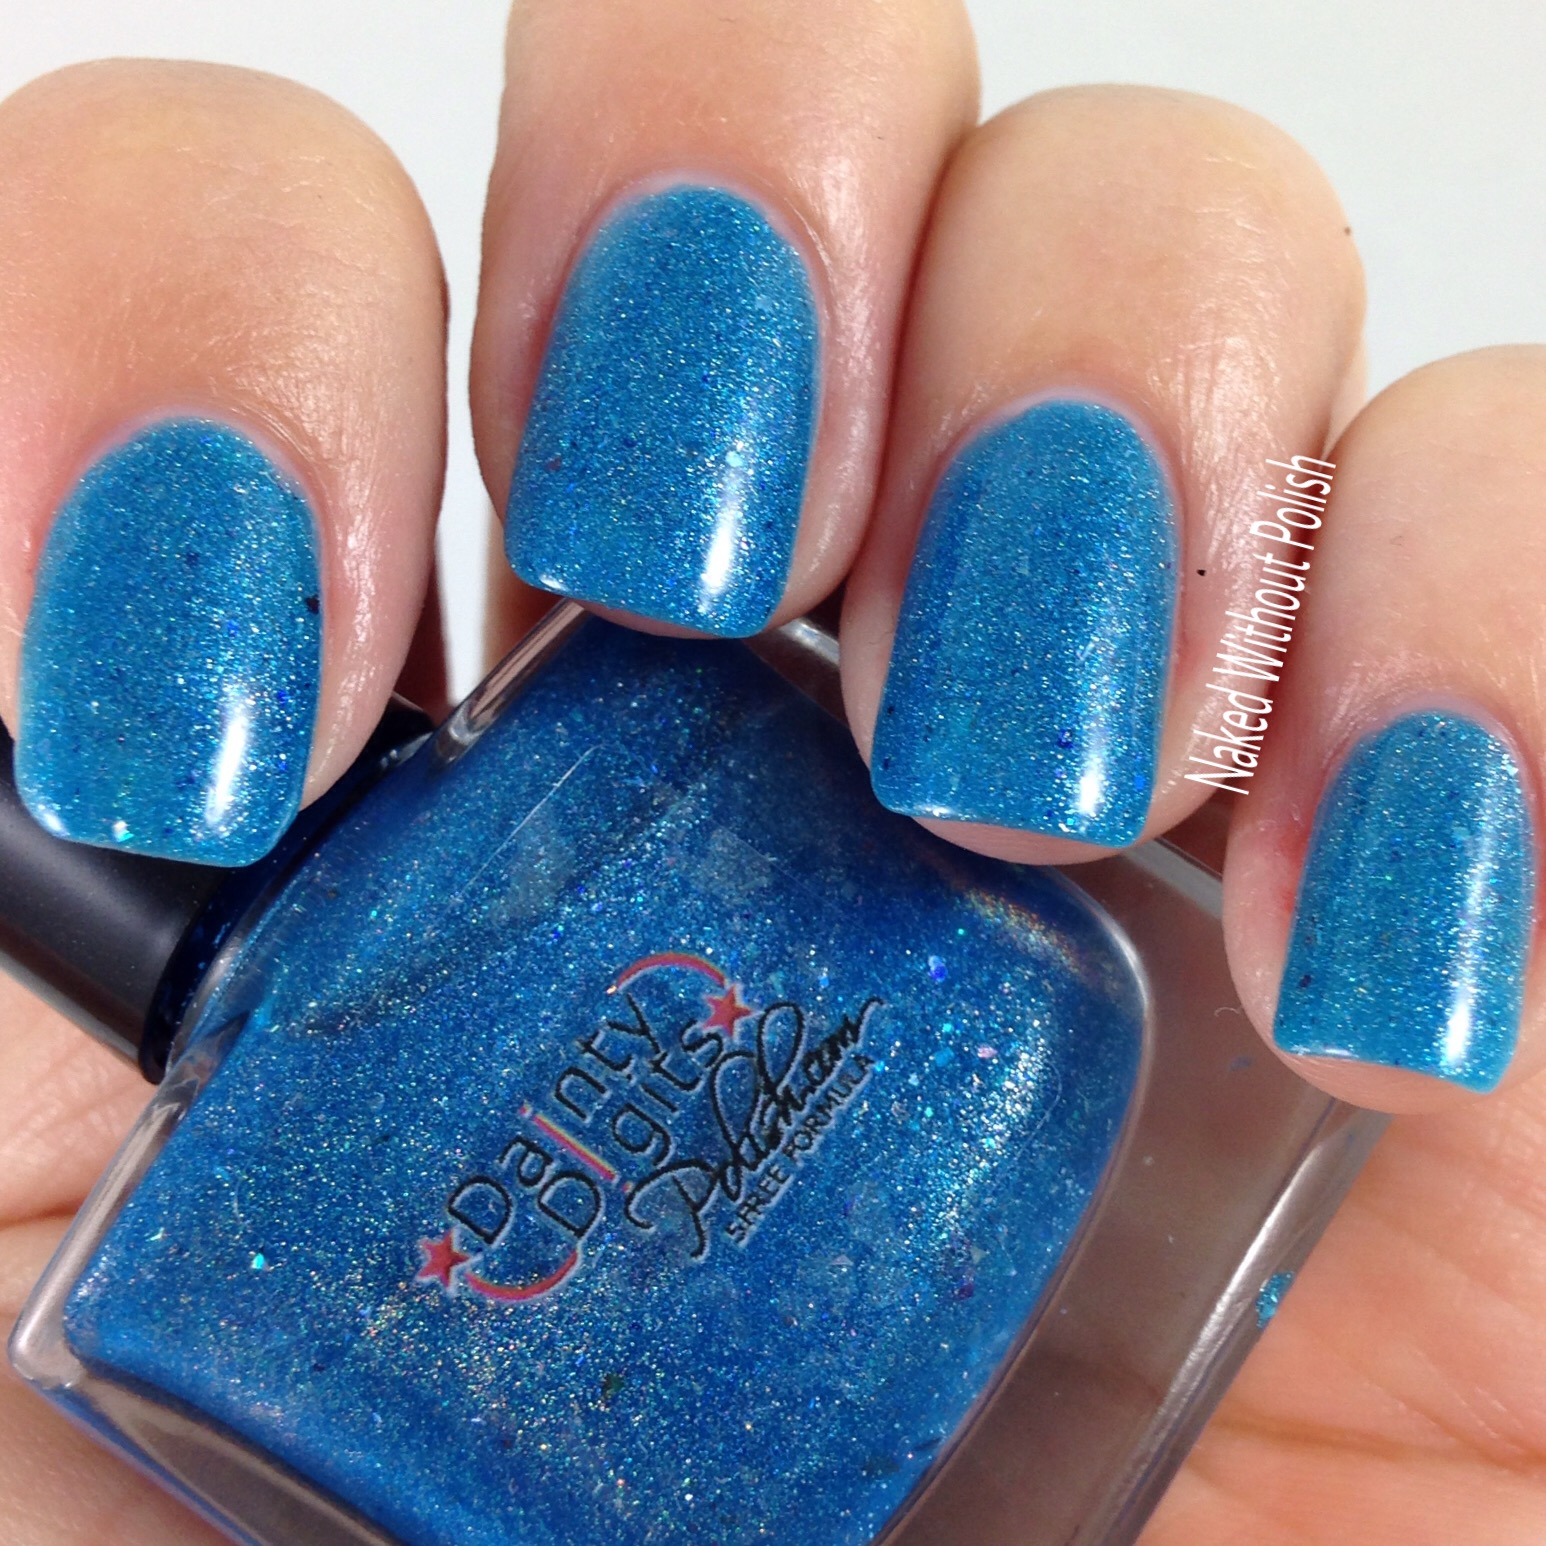 Polish-Pickup-Dainty-Digits-Stormy-Weather-6